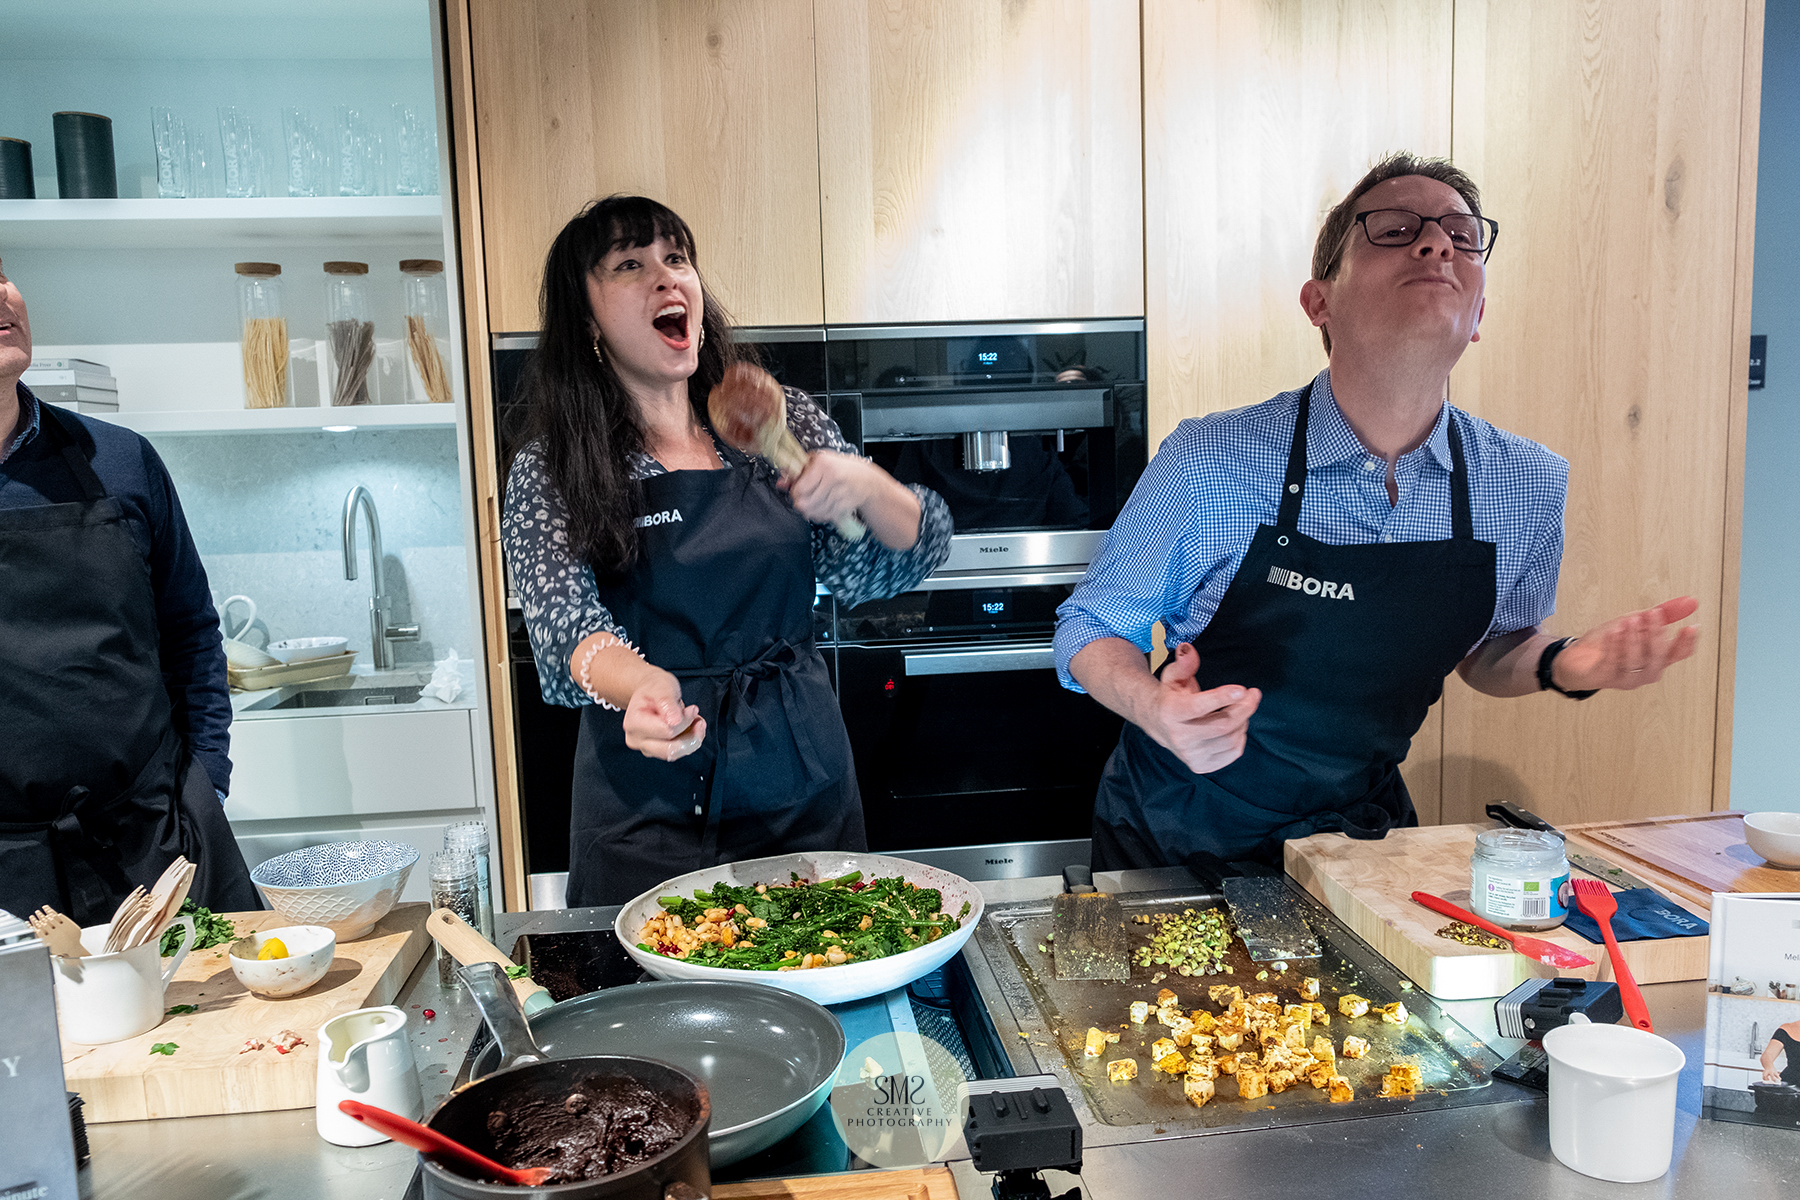 'Espresso Design' Melissa Hemsley demonstating Bora kitchen appliances and how to throw a cube of hallumi and for your co-host to  catch it in his mouth